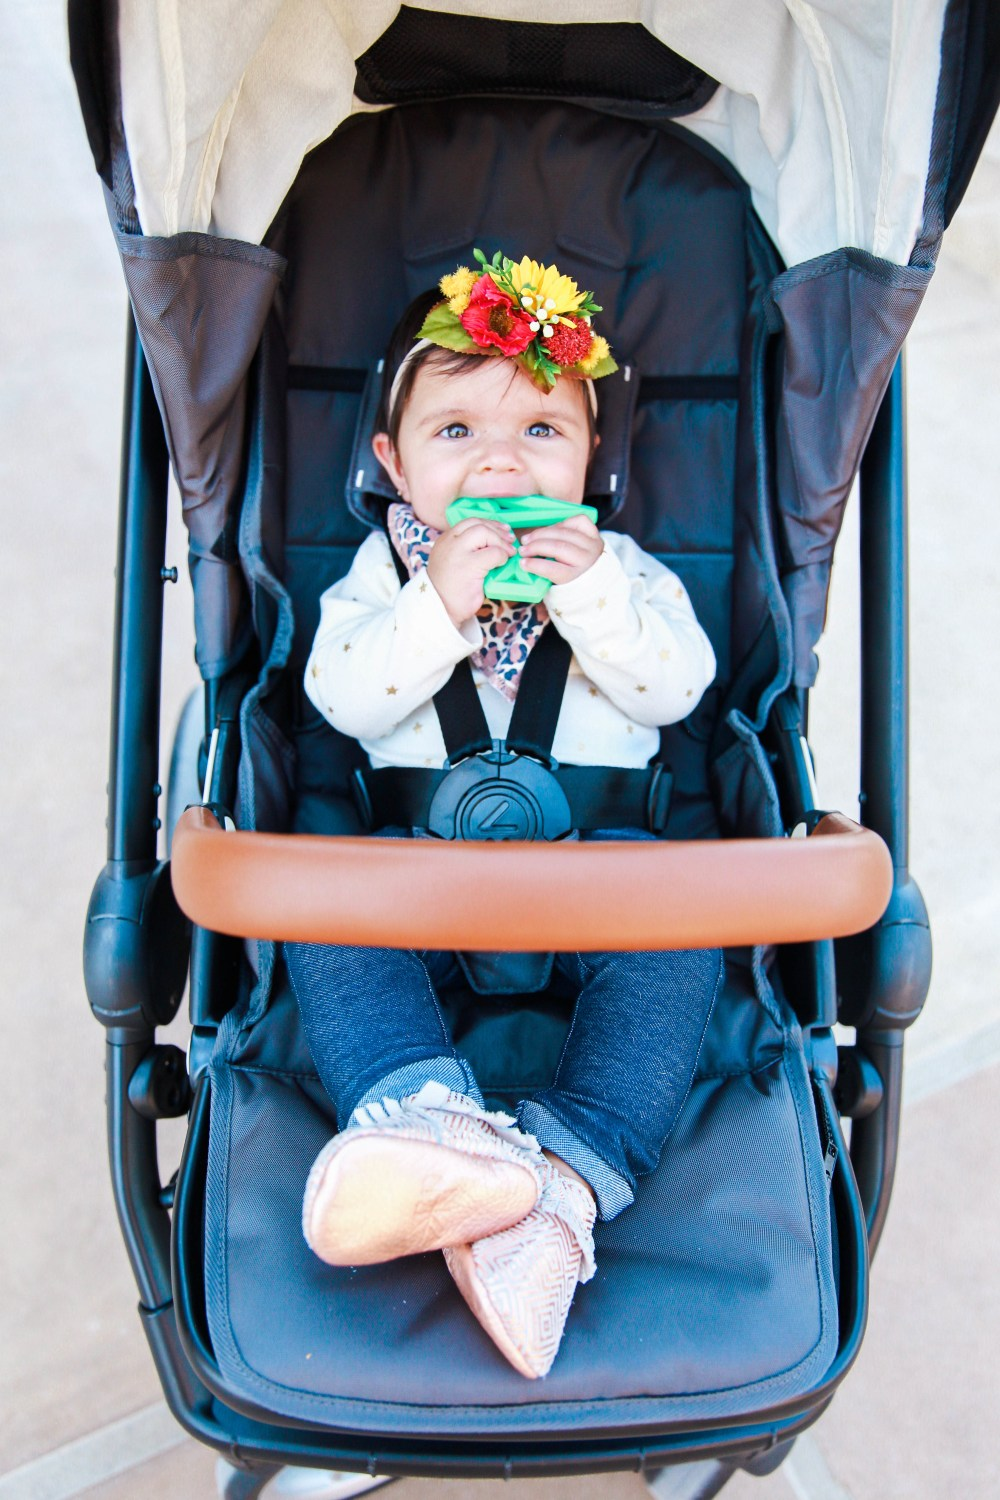 My sweet baby girl rocking a floral headband and leopard print bib! Those baby mocassins too!